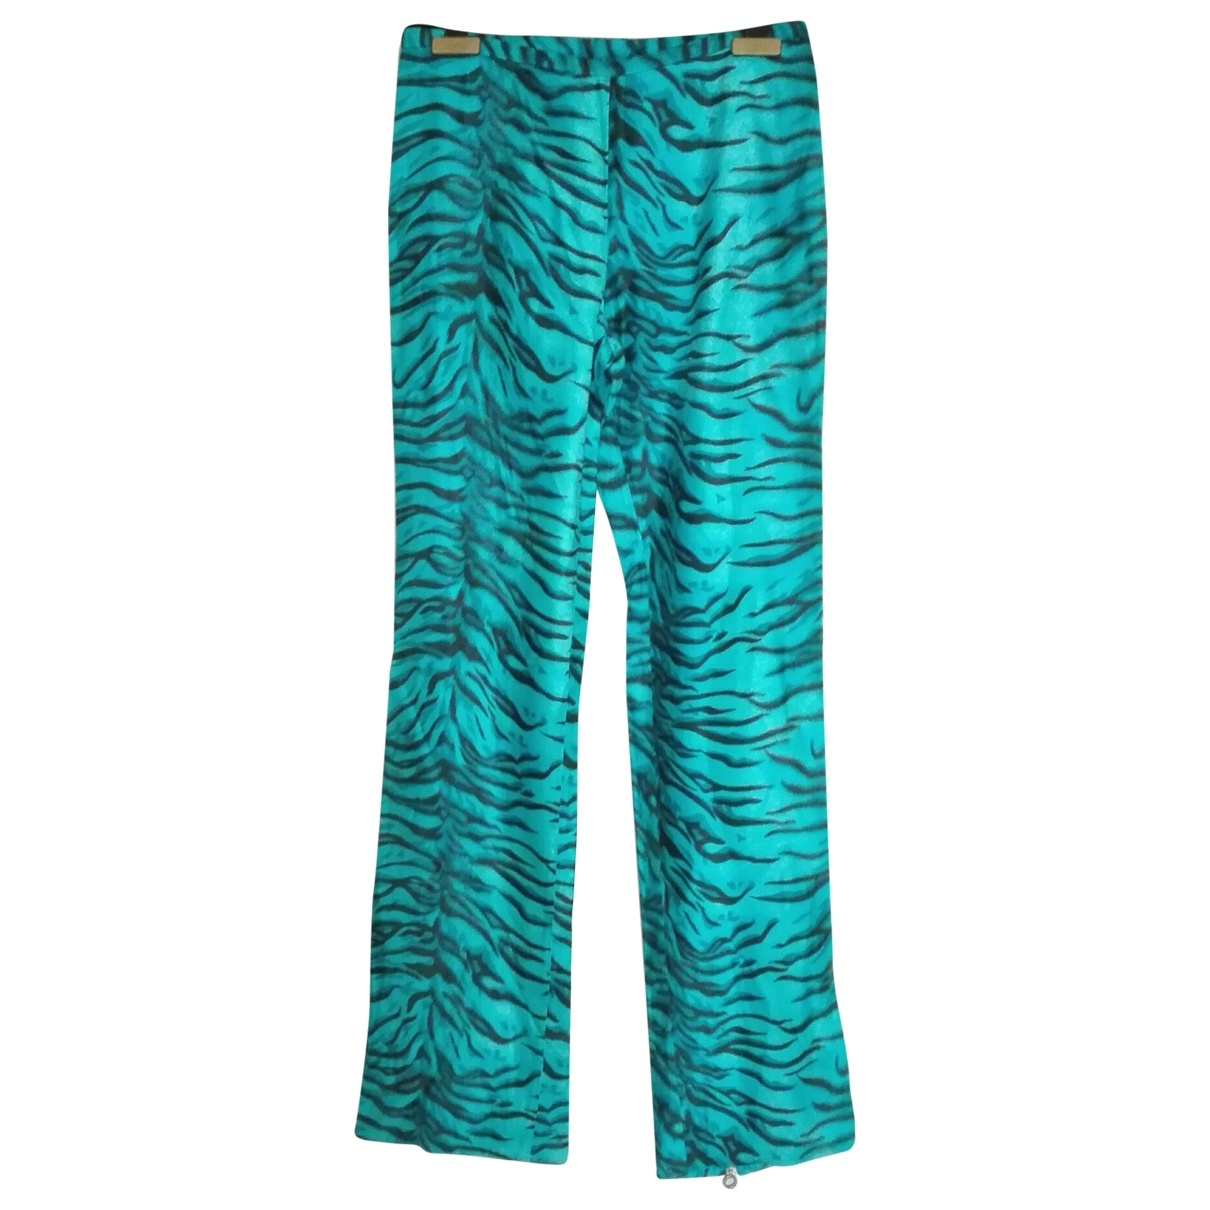 Versace Jeans \N Turquoise Trousers for Women 40 IT